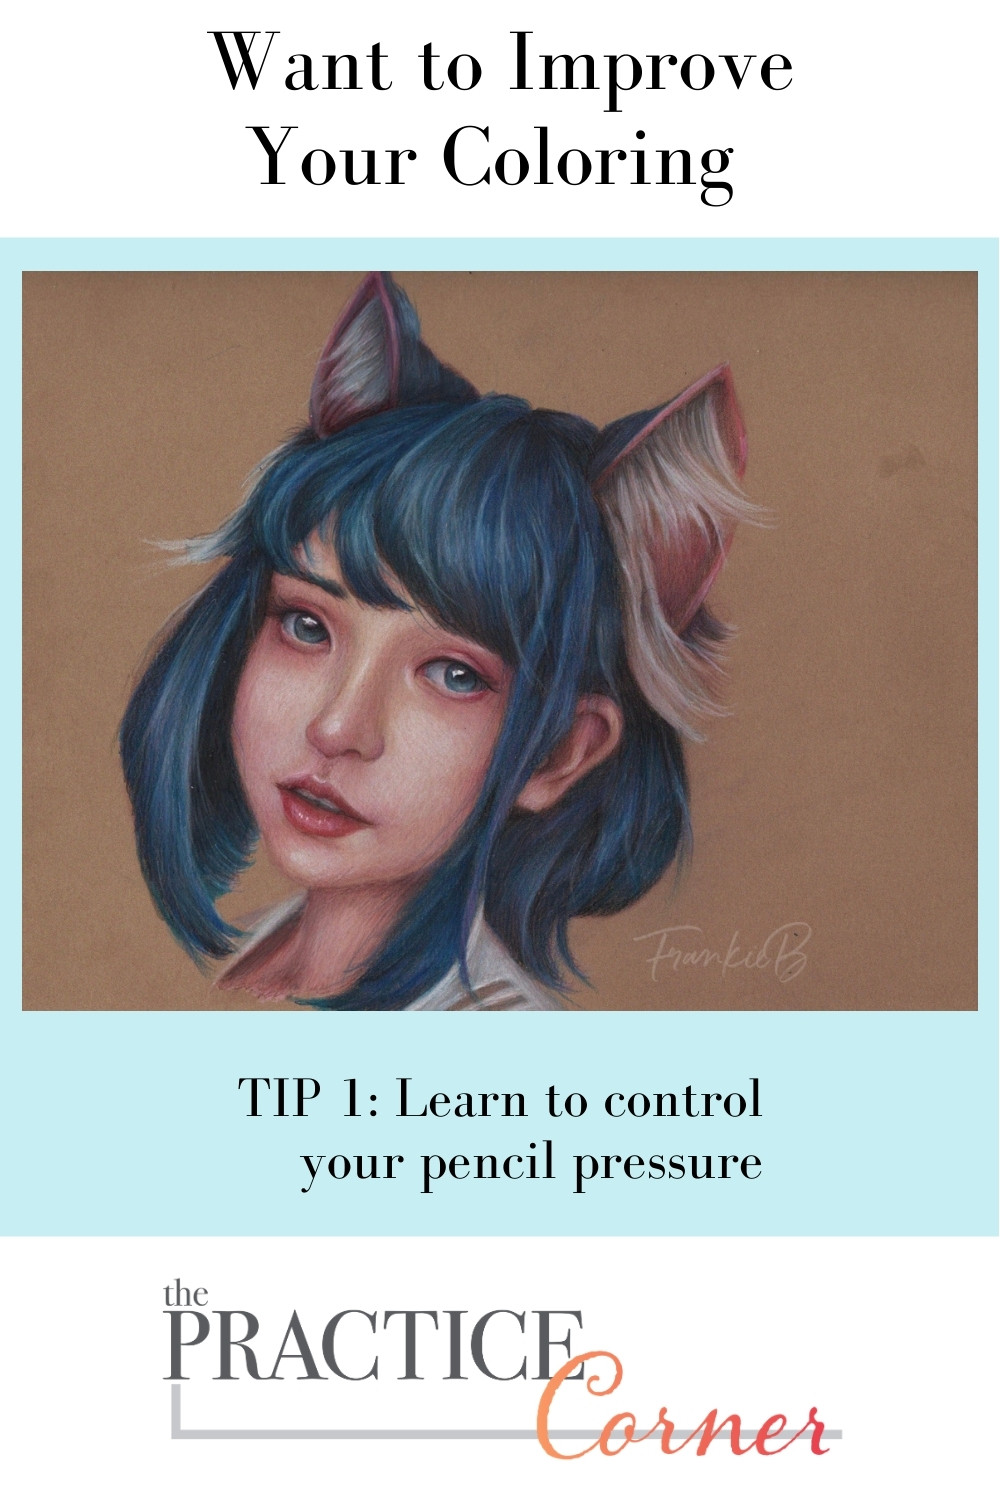 Learn to control colored pencil pressure to improve your coloring. | The Practice Corner | #howtoimproveyourcoloring #coloredpencilpractice #coloredpencilpressure